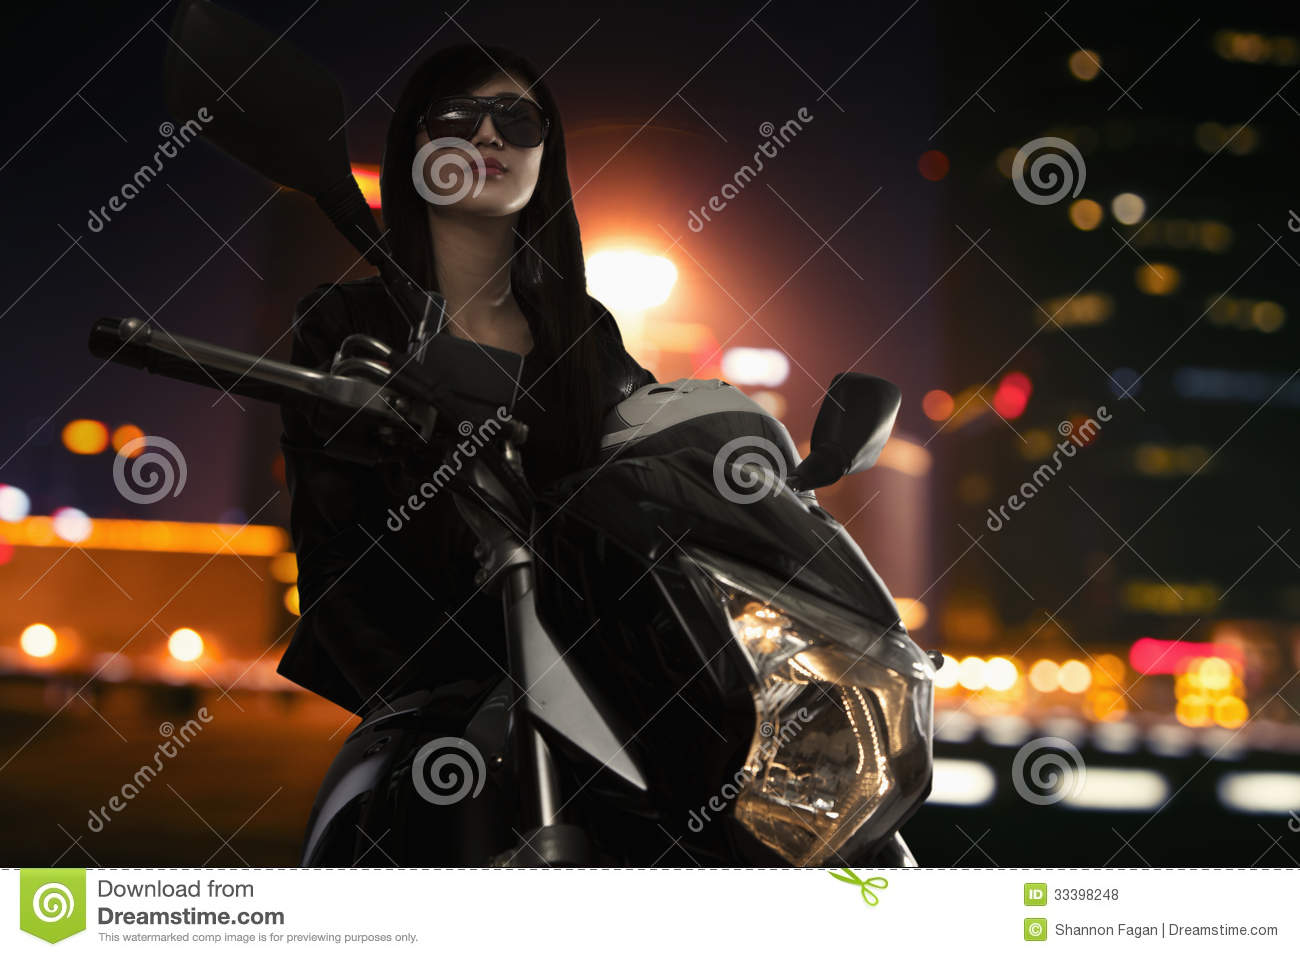 Beautiful young woman in sunglasses sitting on a motorcycle at night time in Beijing